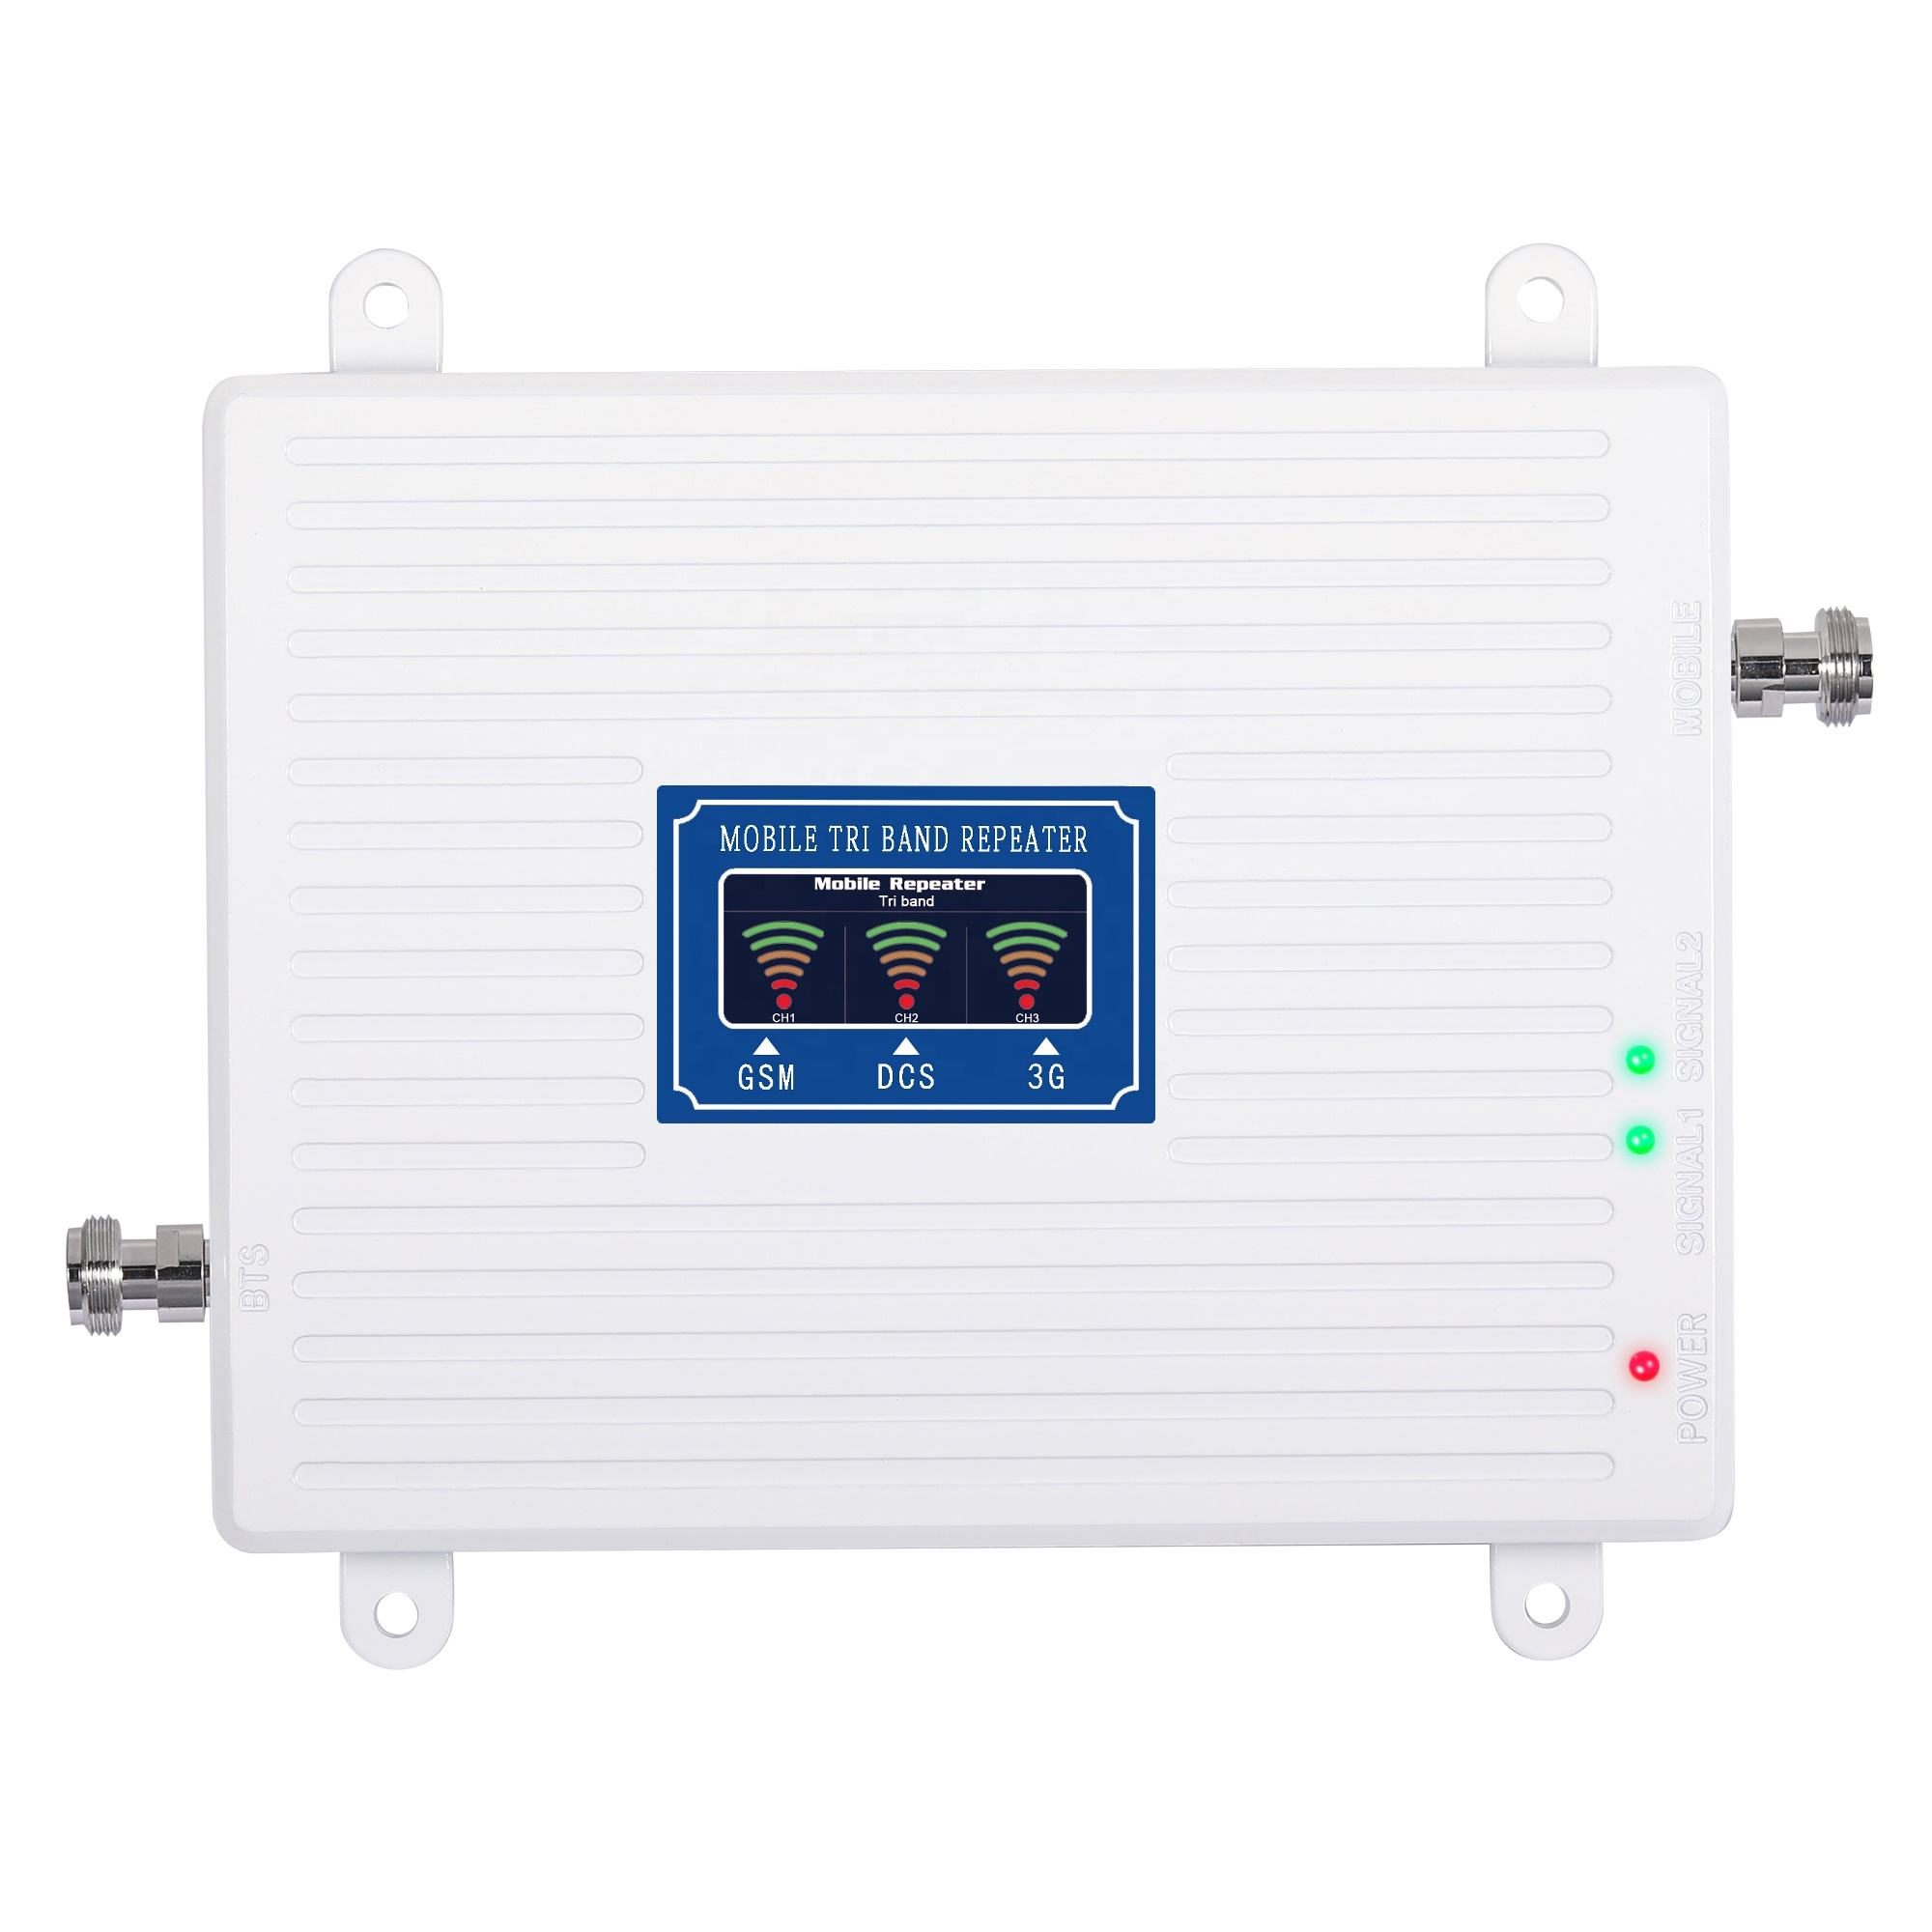 High quality white GSM DCS WCDMA signal amplifier booster 70dB 2g 3g 4g 900/1800/2100 mhz tri band mobile signal repeater